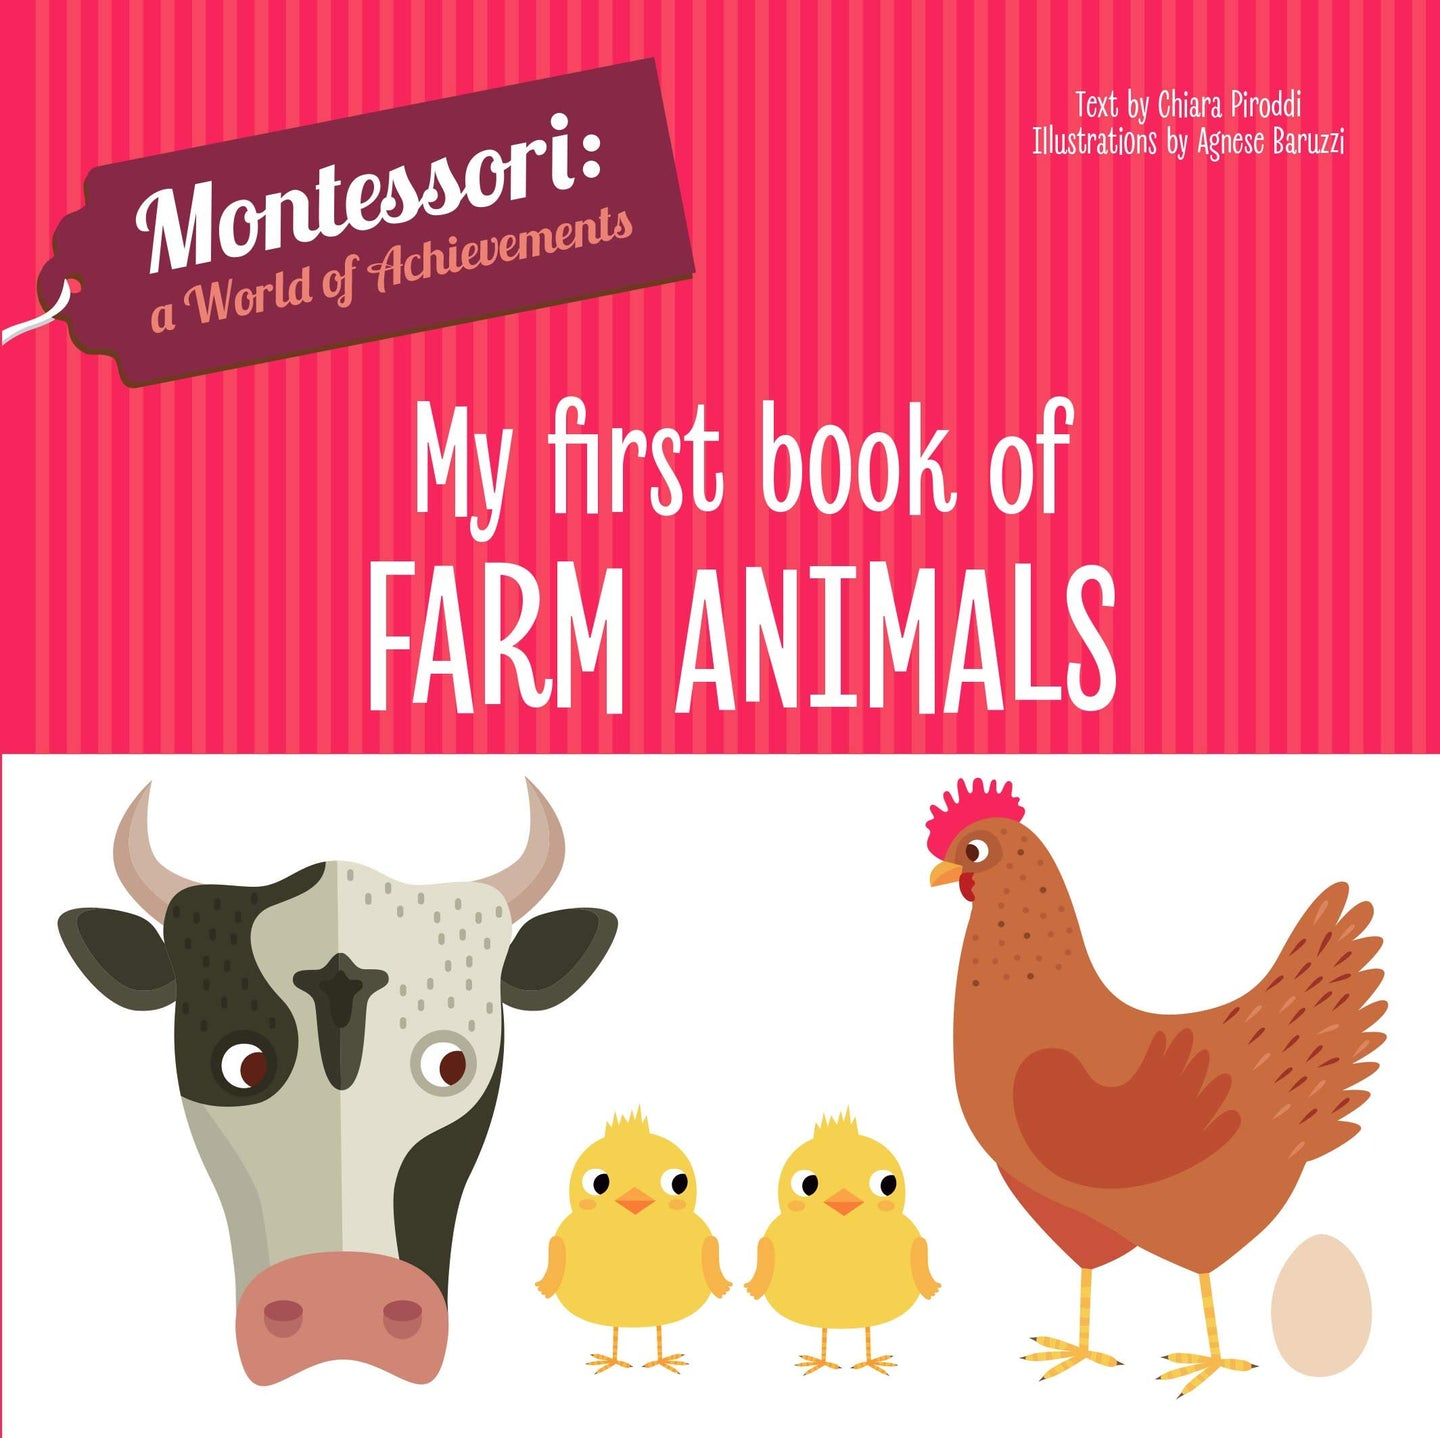 Montessori: A World of Achievement - My First Book of Farm Animals (Board Book)